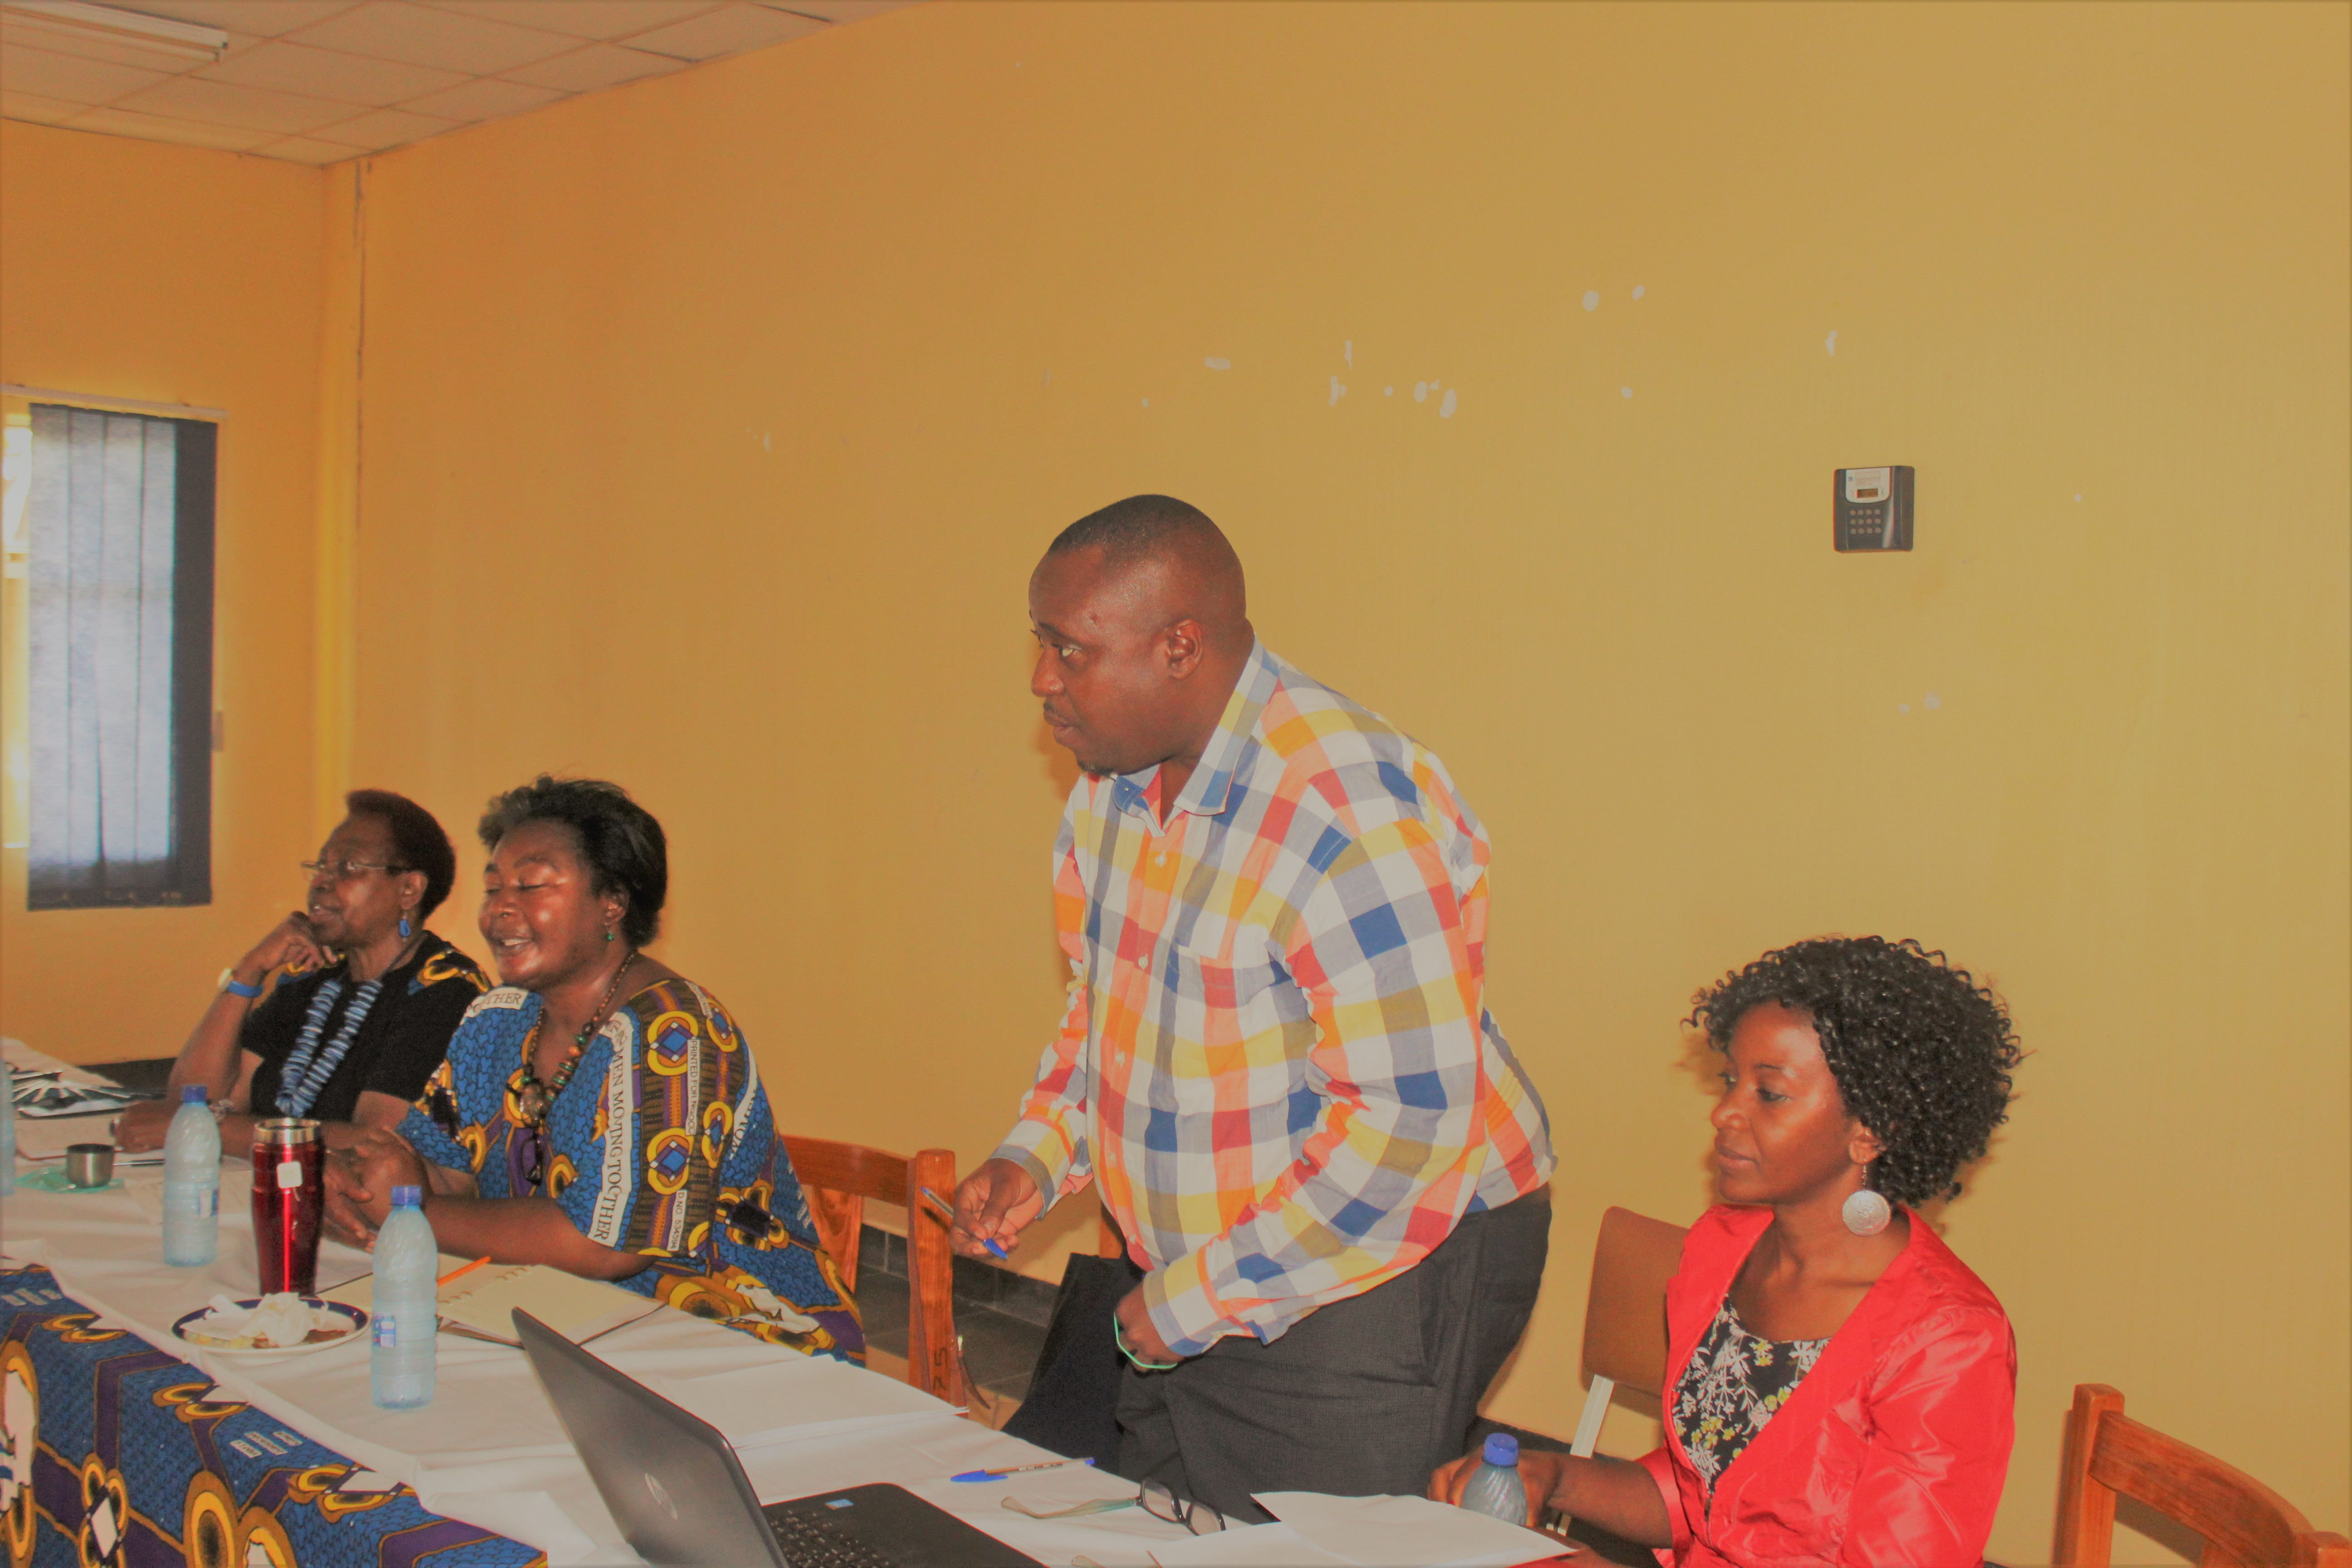 MEMBERSHIP CONSULTATIVE MEETING ON THE GLOBAL FUND, CONSTITUTION AND INTERNATIONAL WOMEN'S DAY